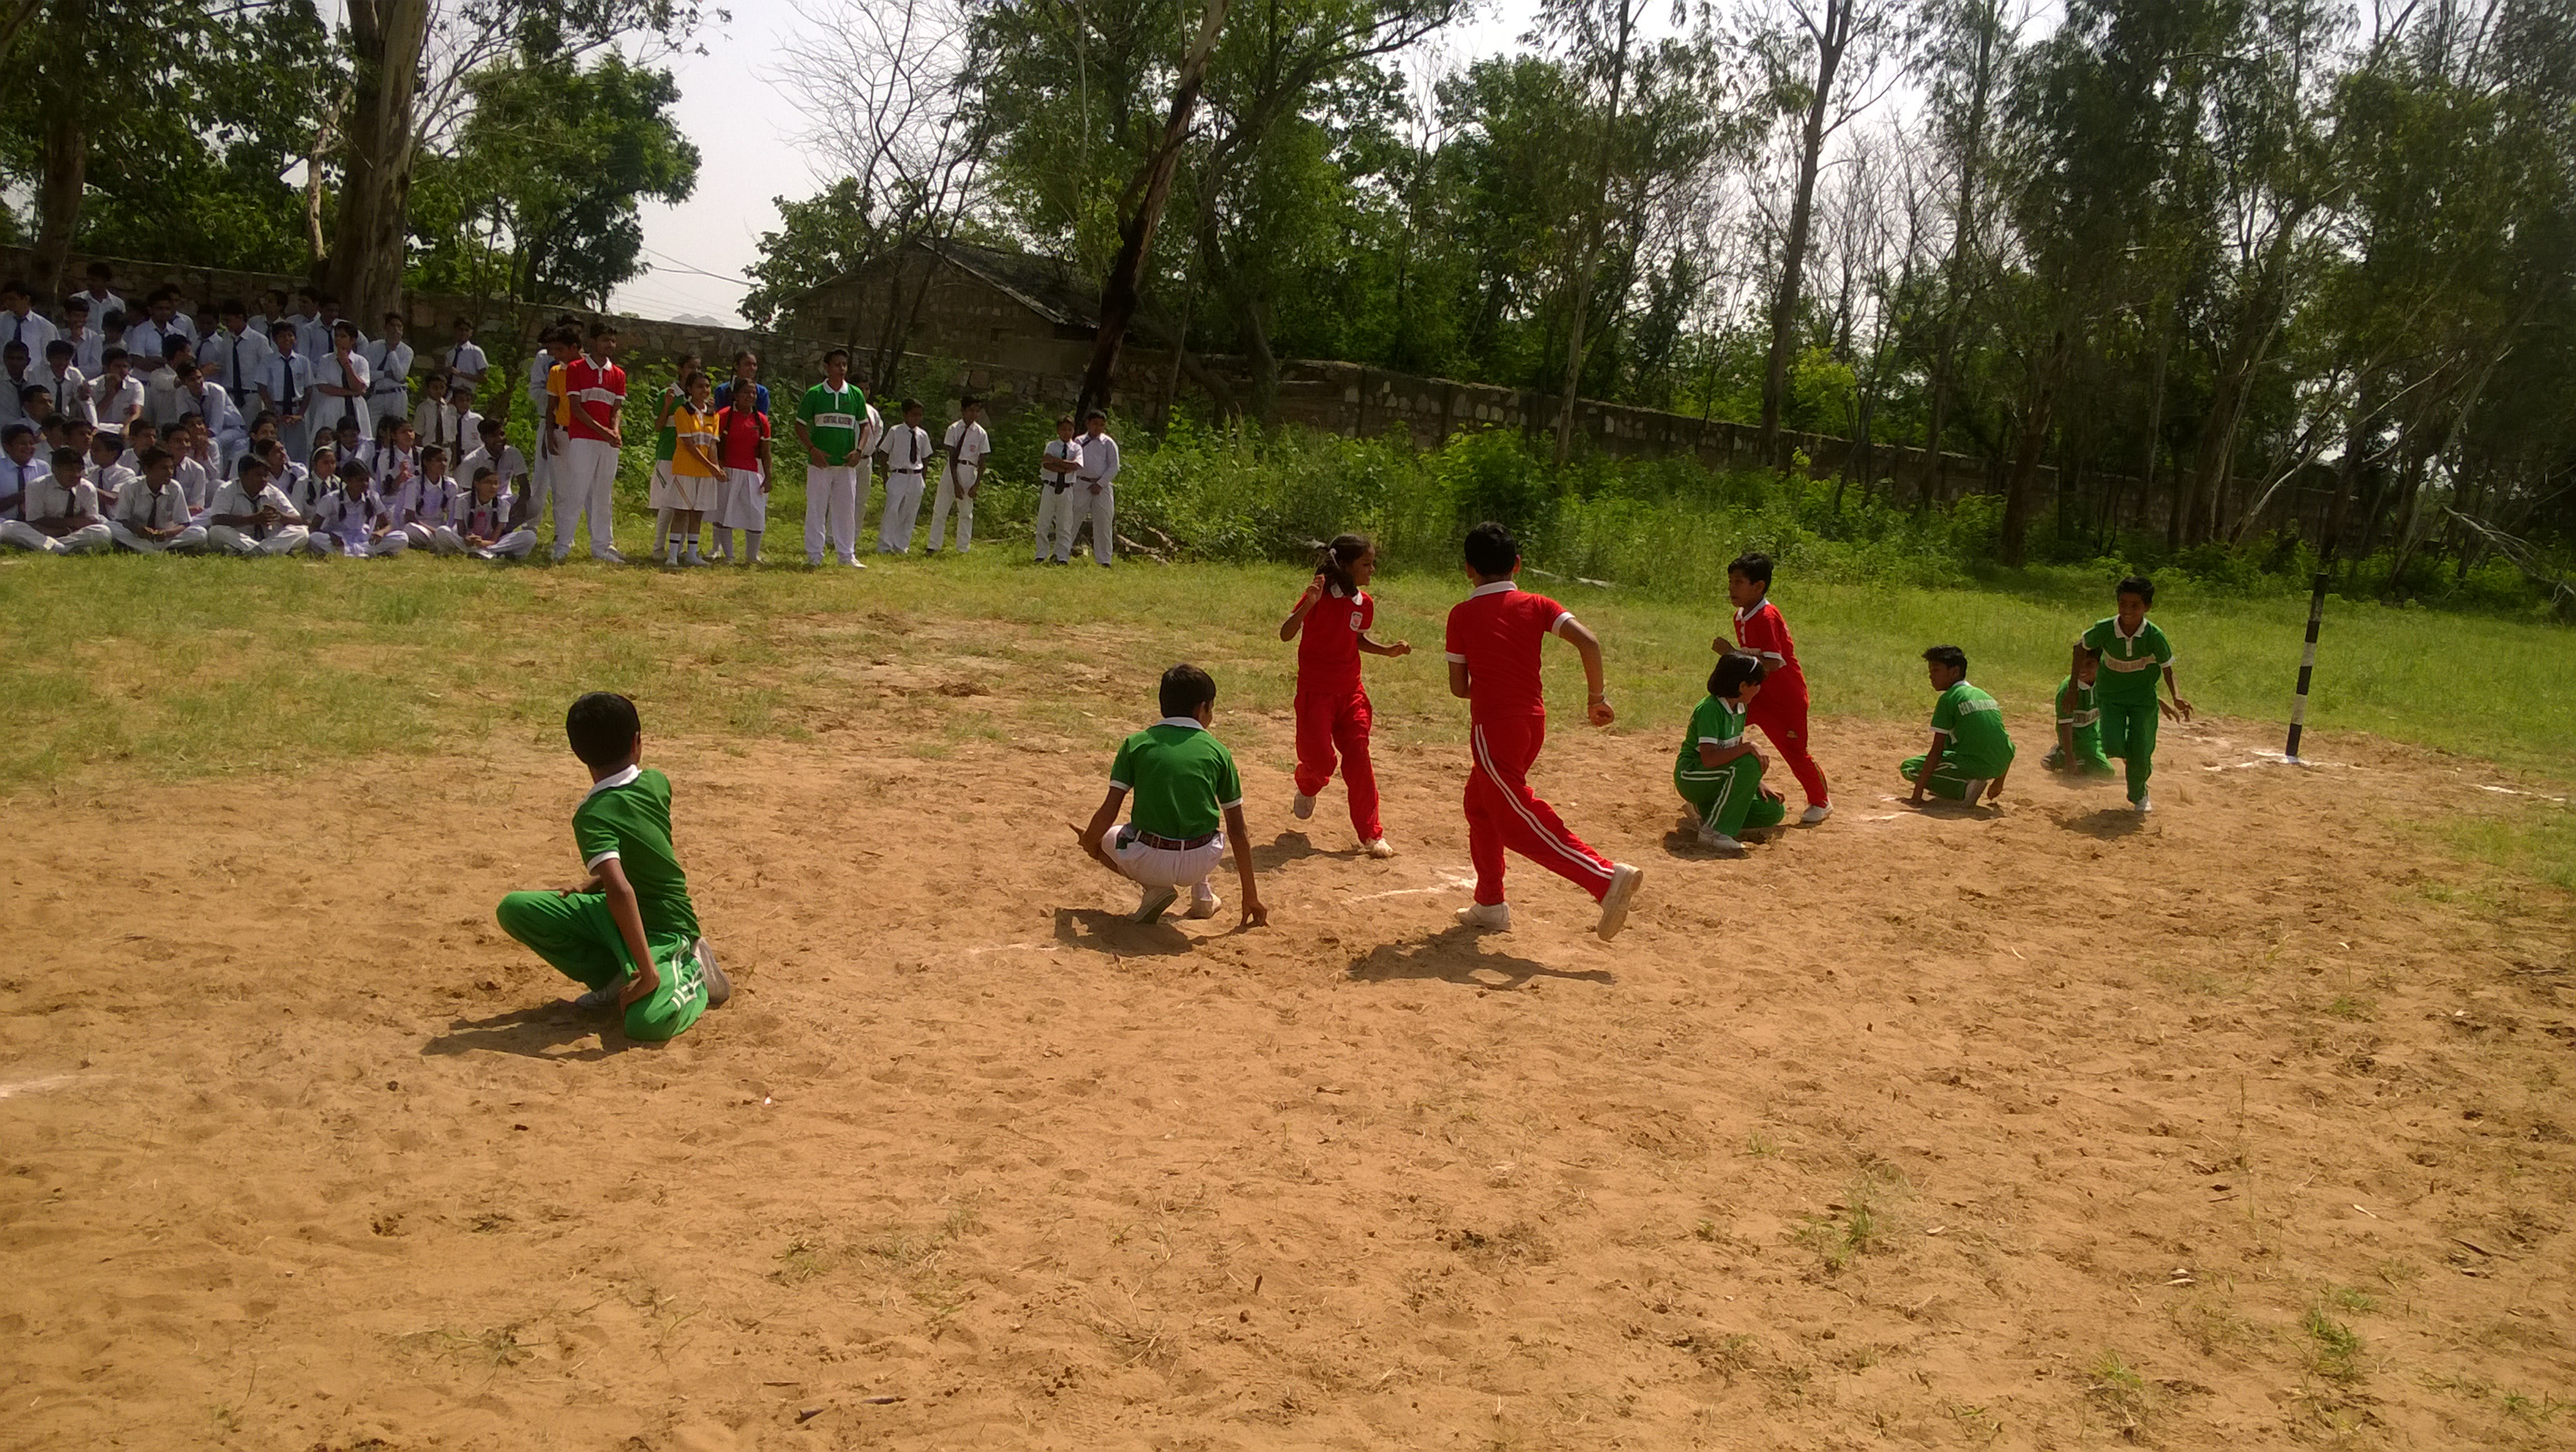 kho-kho competition 4.jpg